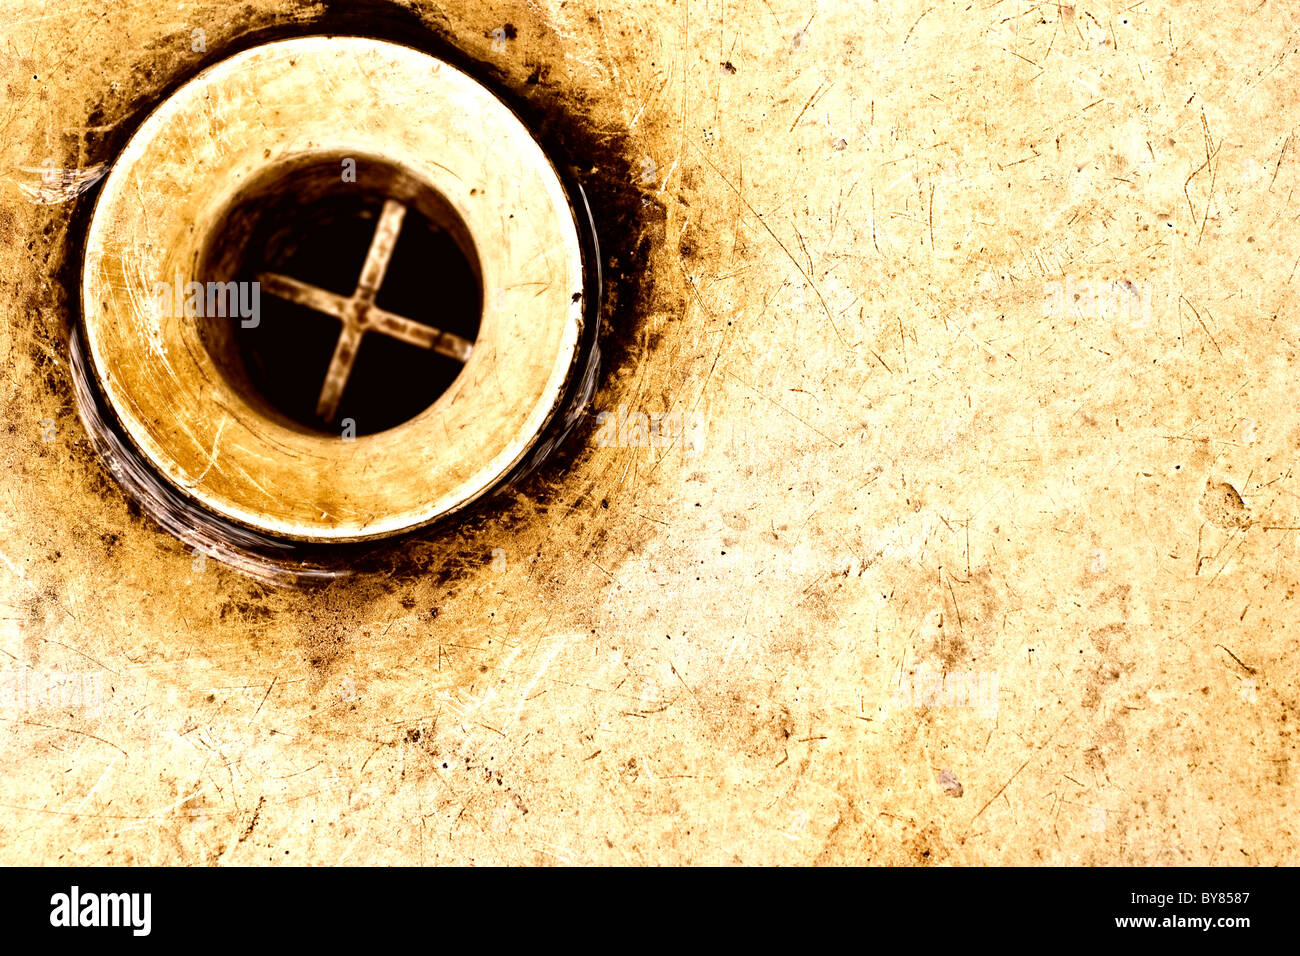 old rusty sink drain - Stock Image